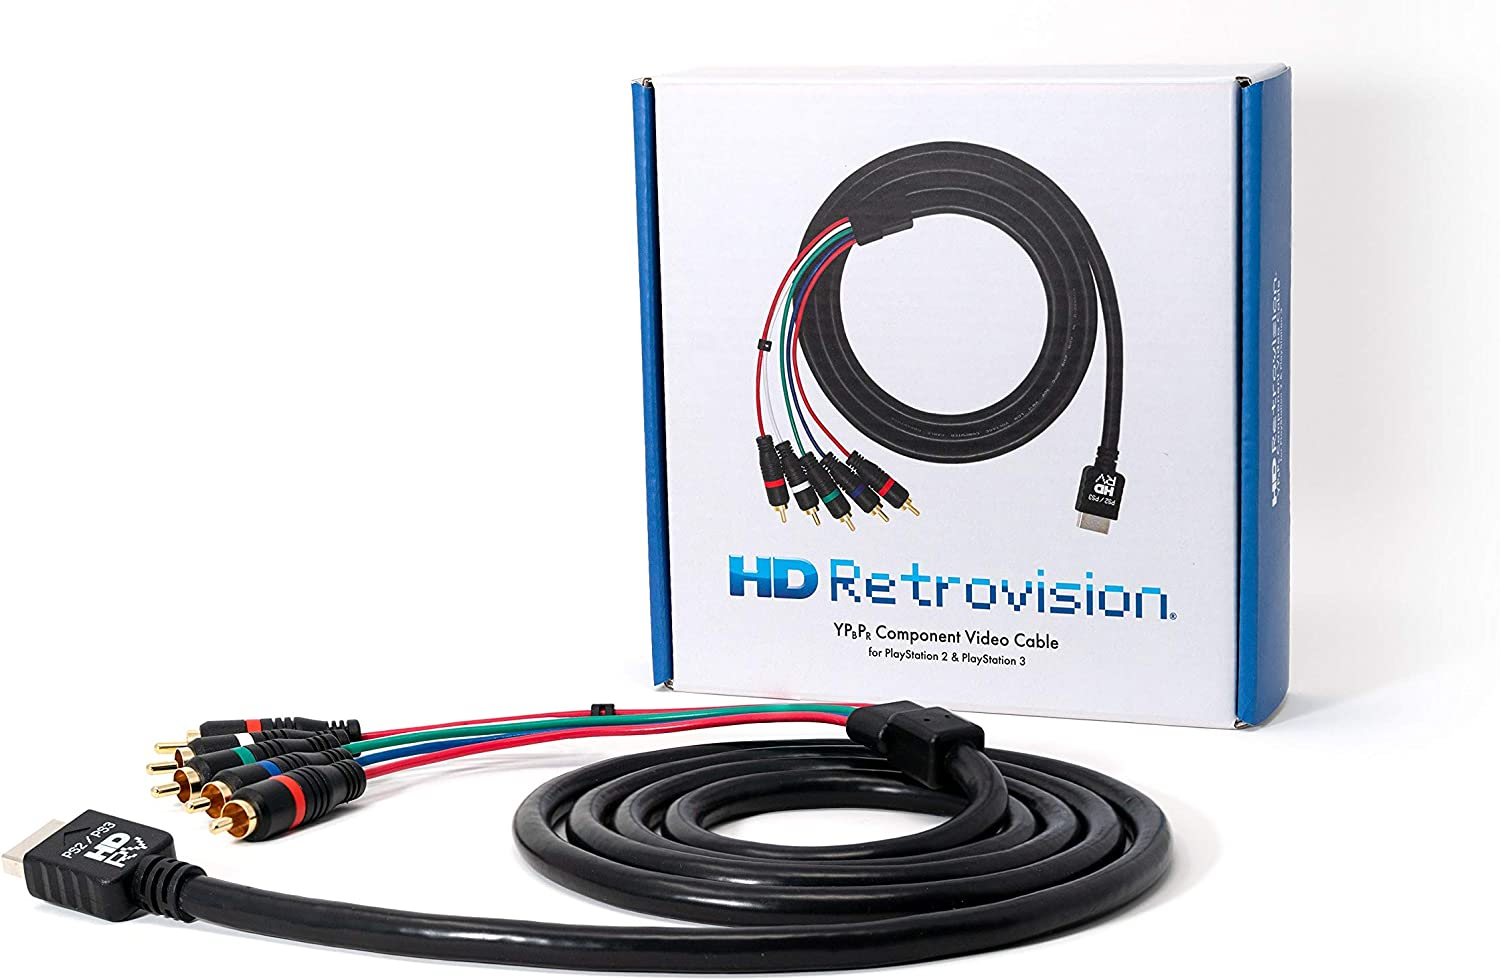 HD Retrovision PlayStation 2/3 (PS2/PS3) Premium YPbPr Component Video Cable